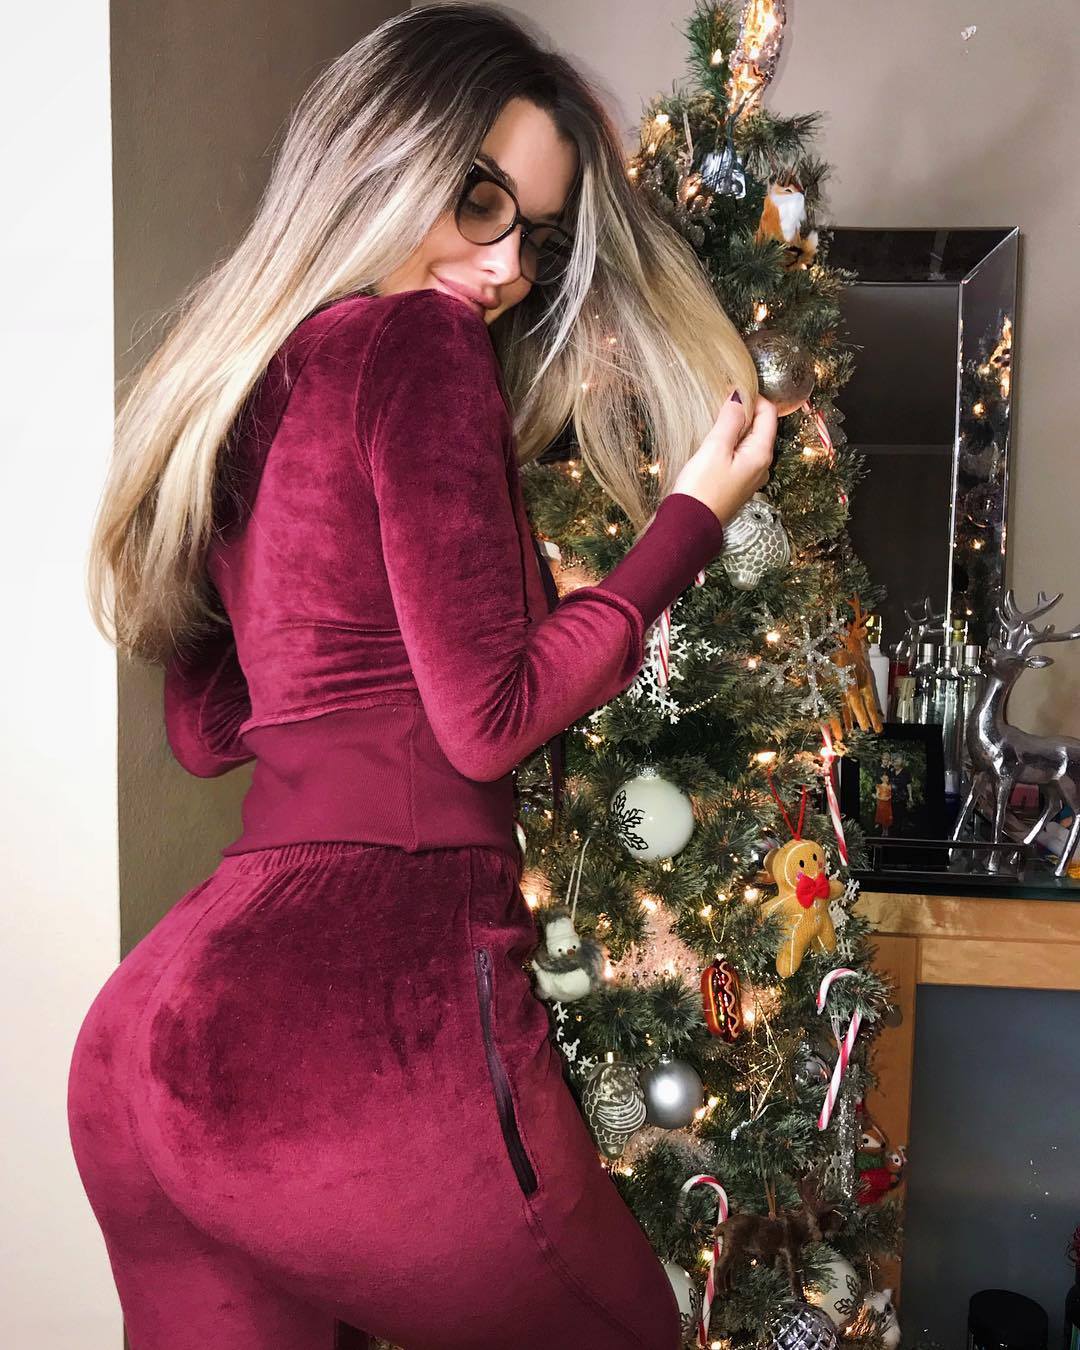 emily sears great booty